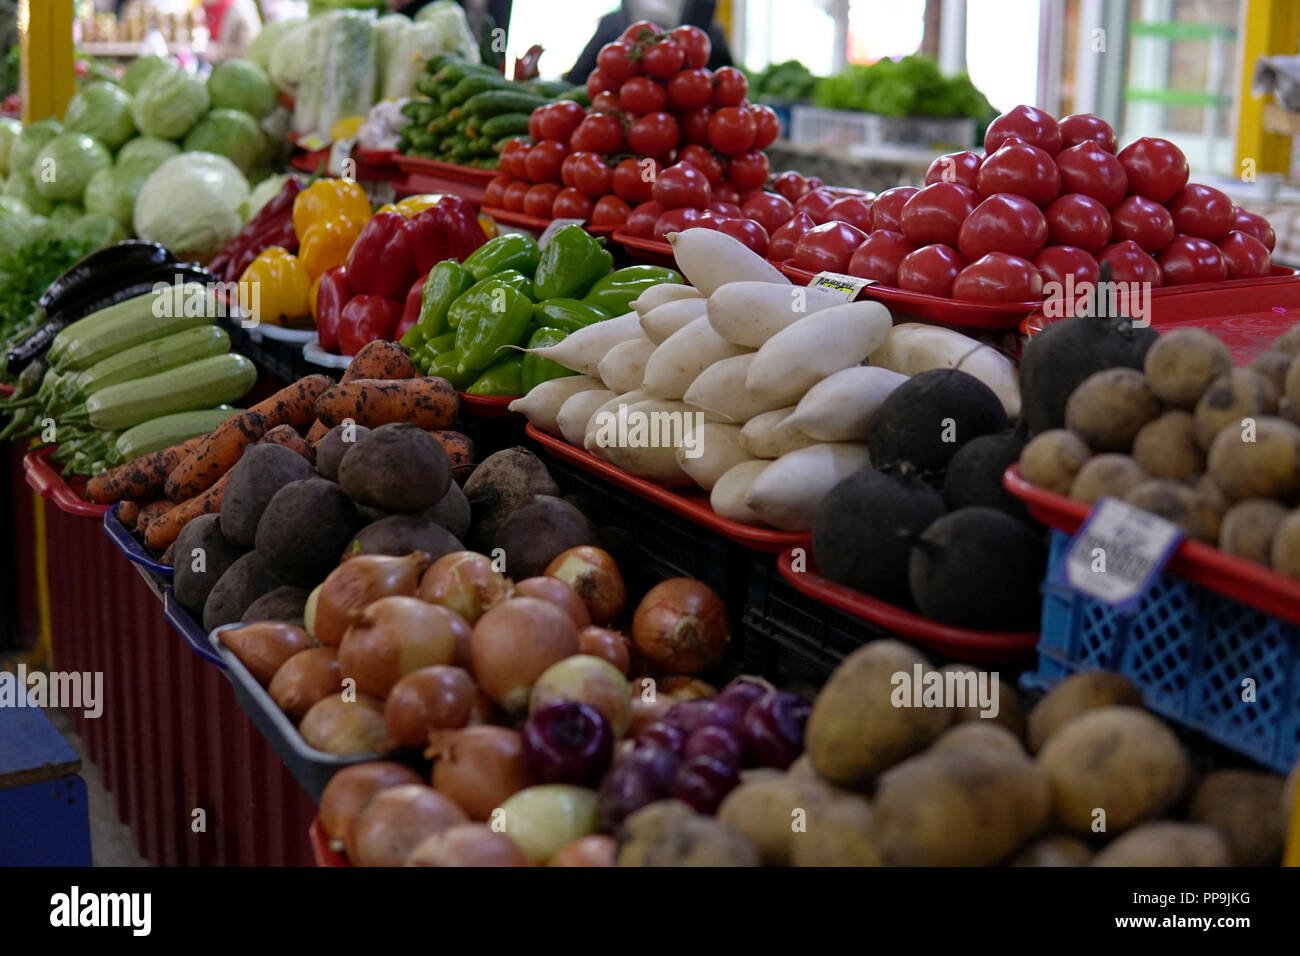 fruit and vegetables apples oranges tomatoes tangerines-melons - Stock Image